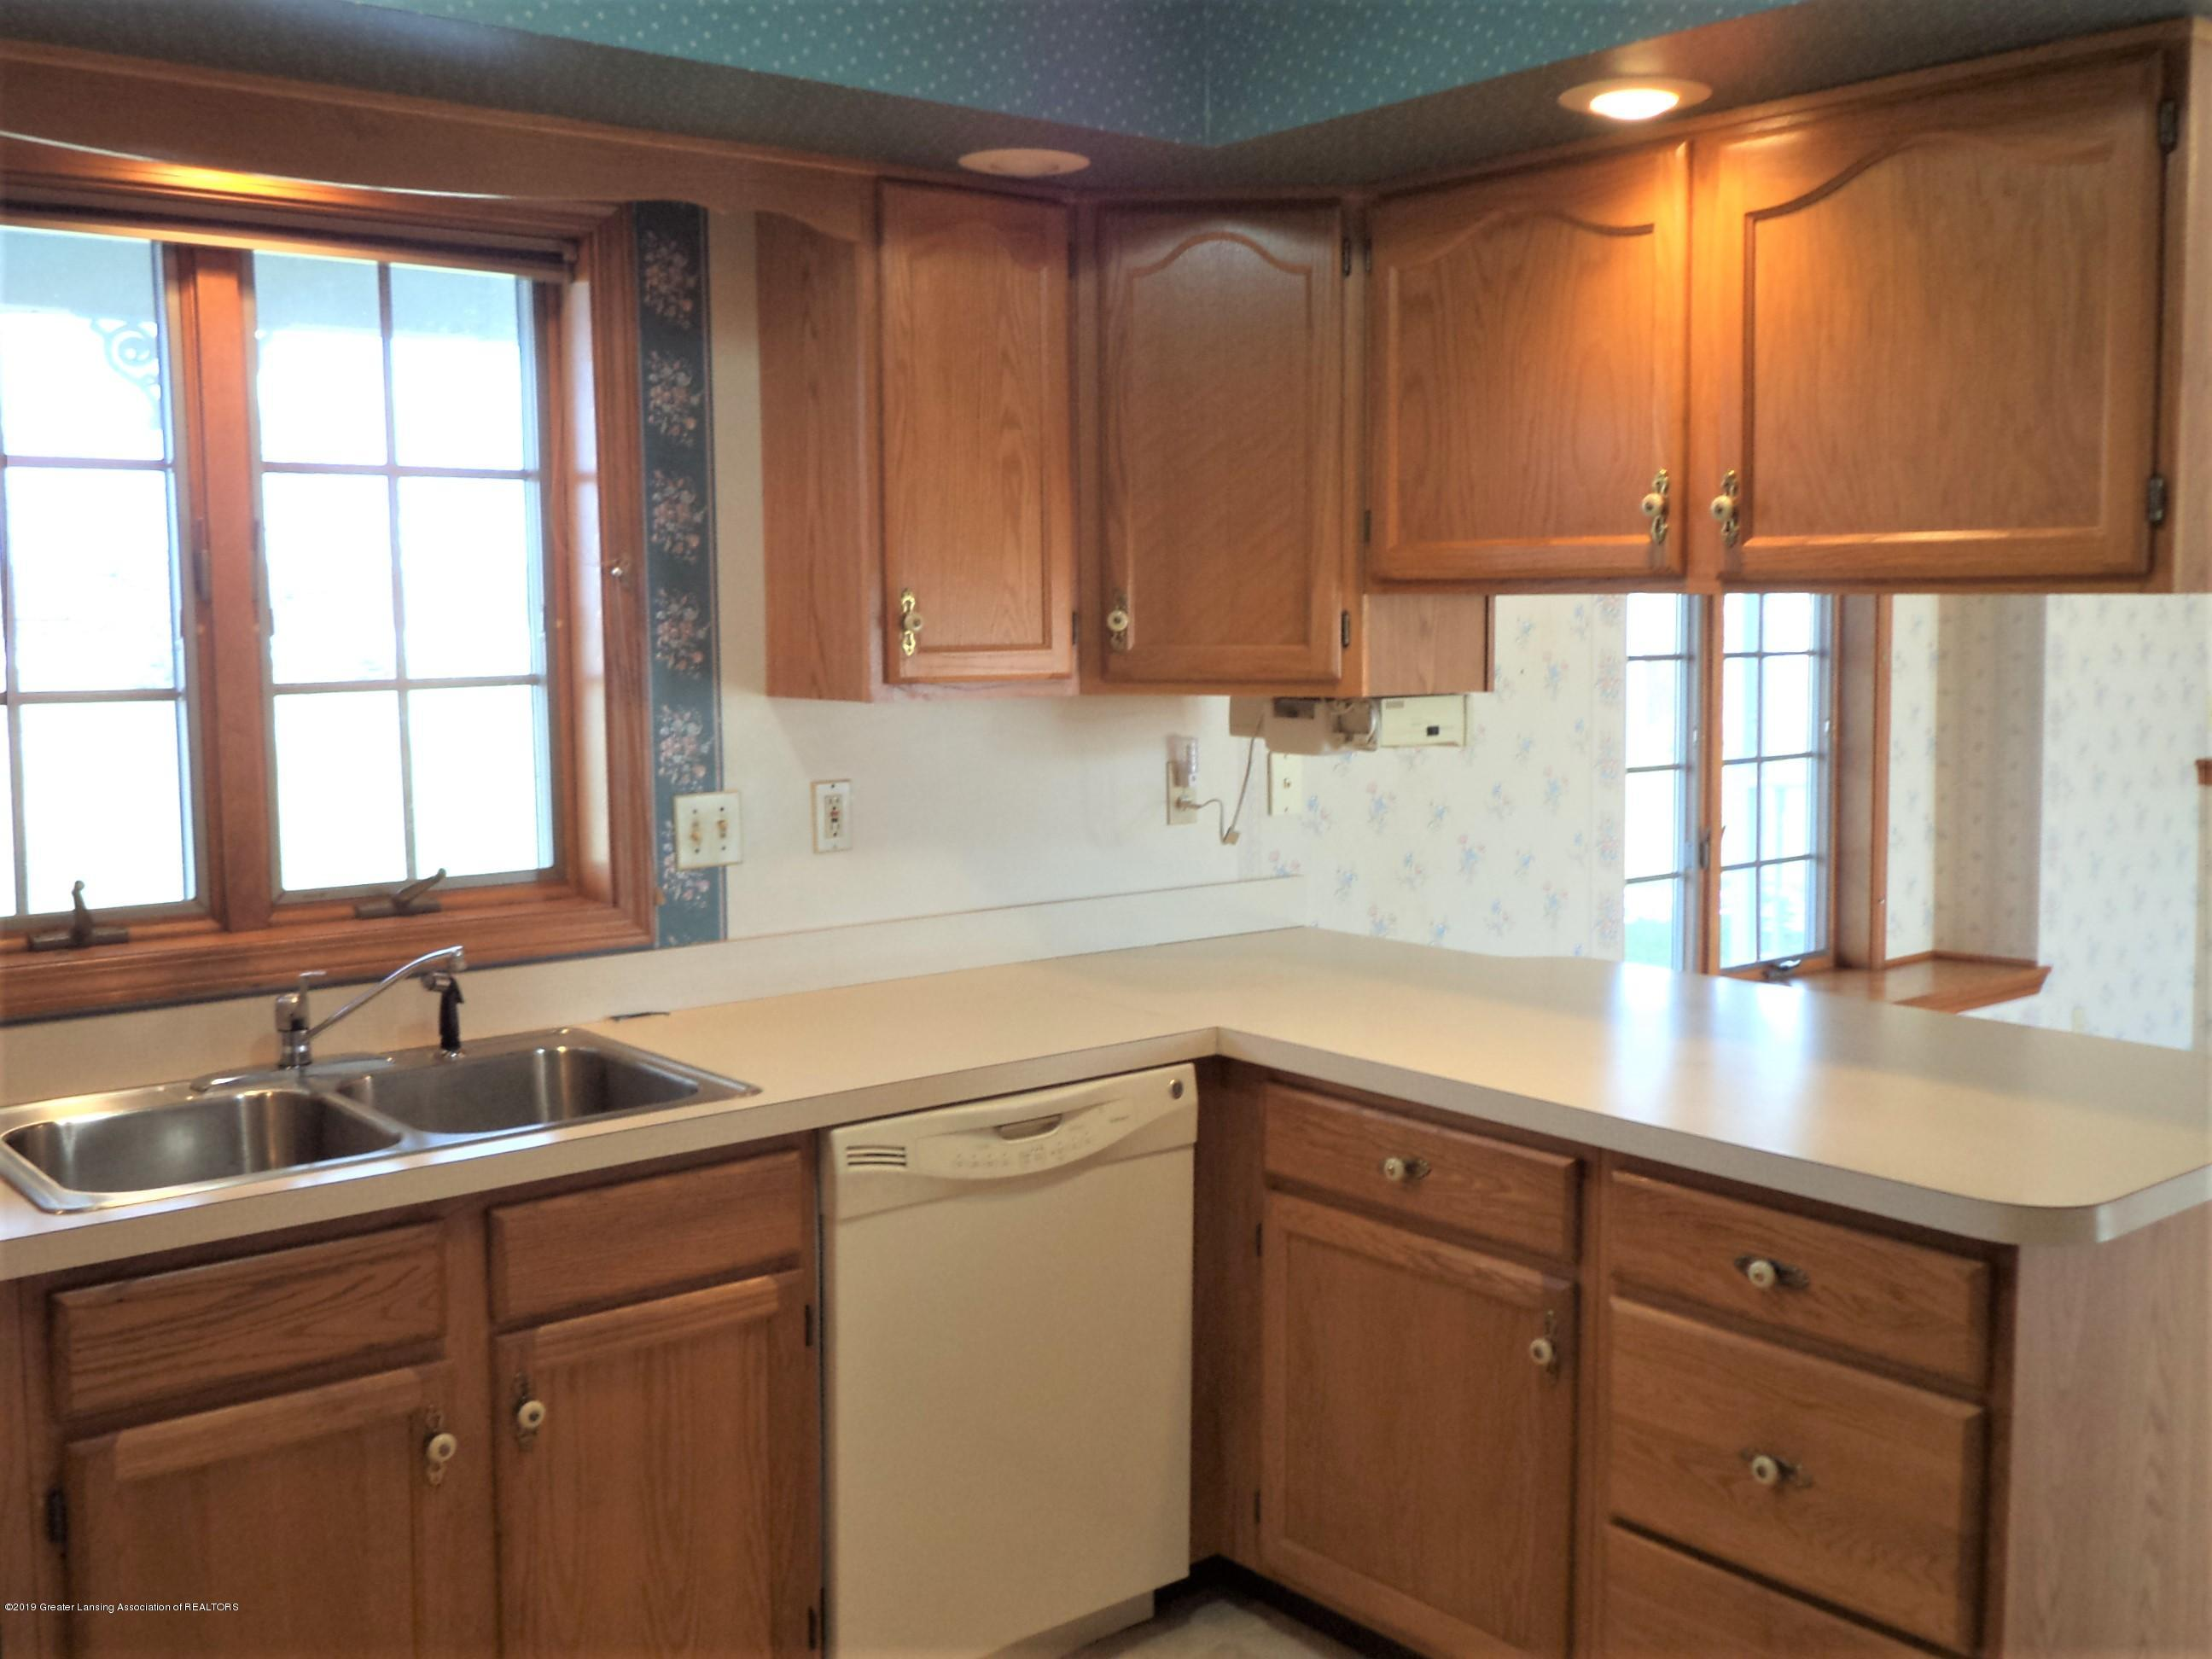 5535 W Parks Rd - Kitchen view 2 - 9